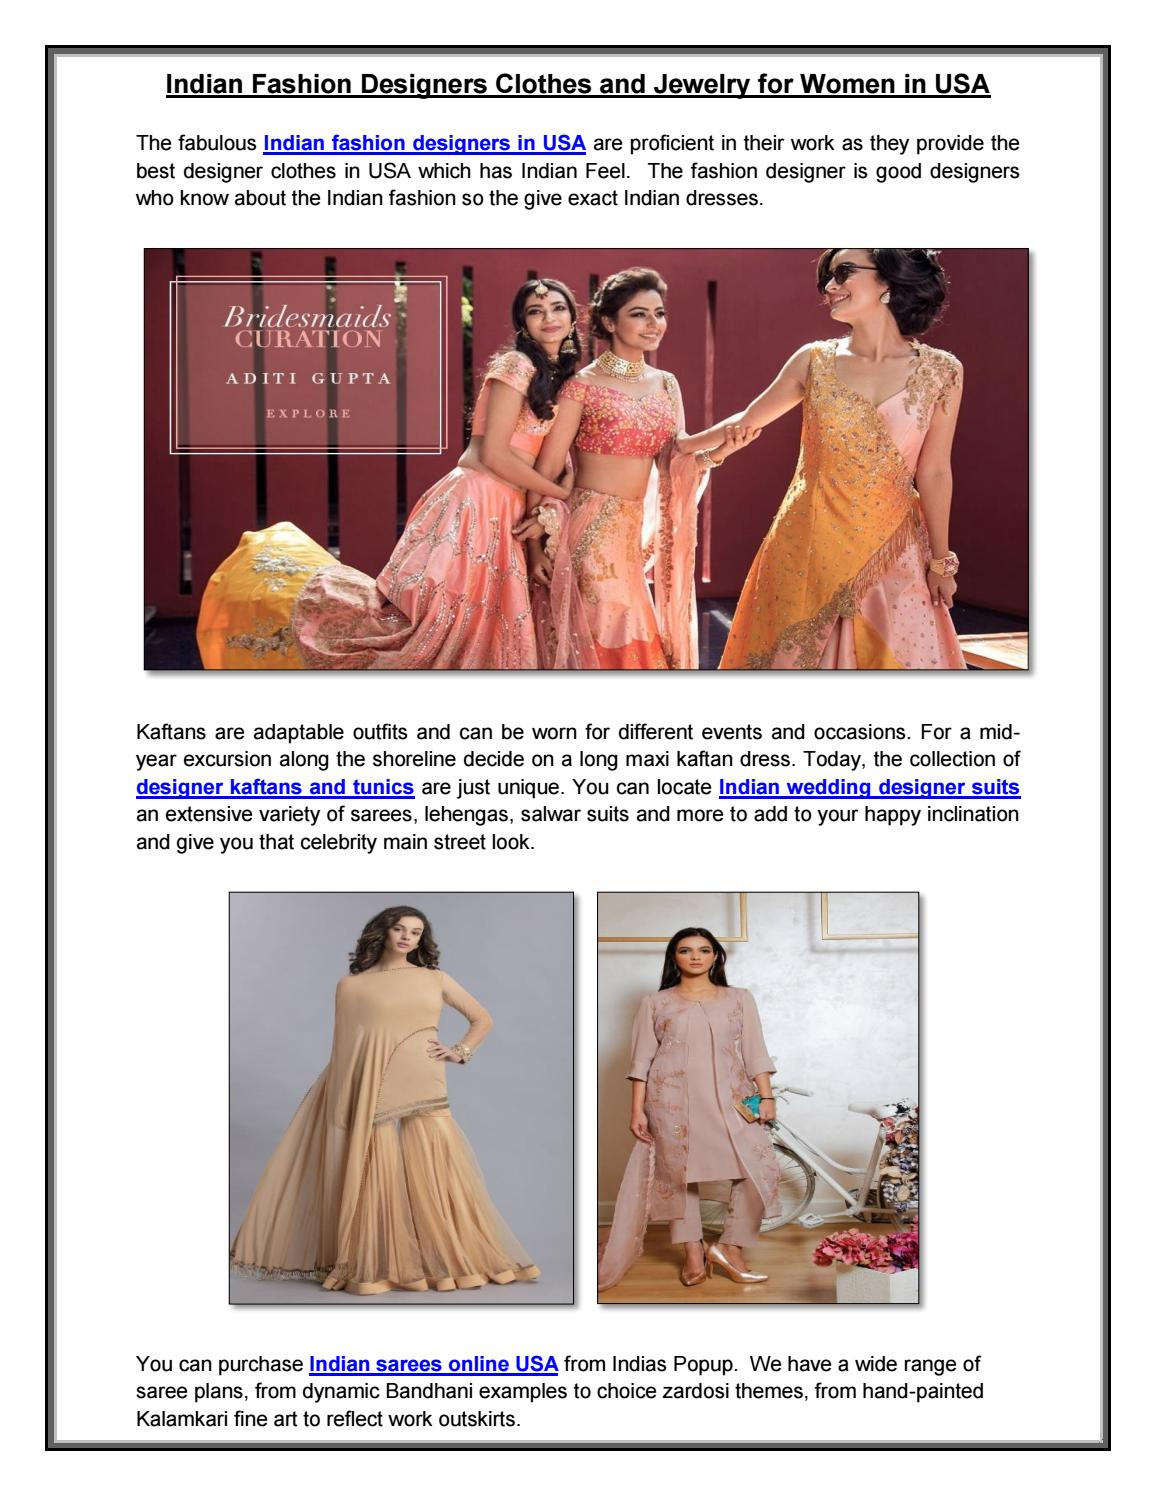 Indian Fashion Designers Clothes And Jewelry For Women In Usa By Indias Popup Issuu